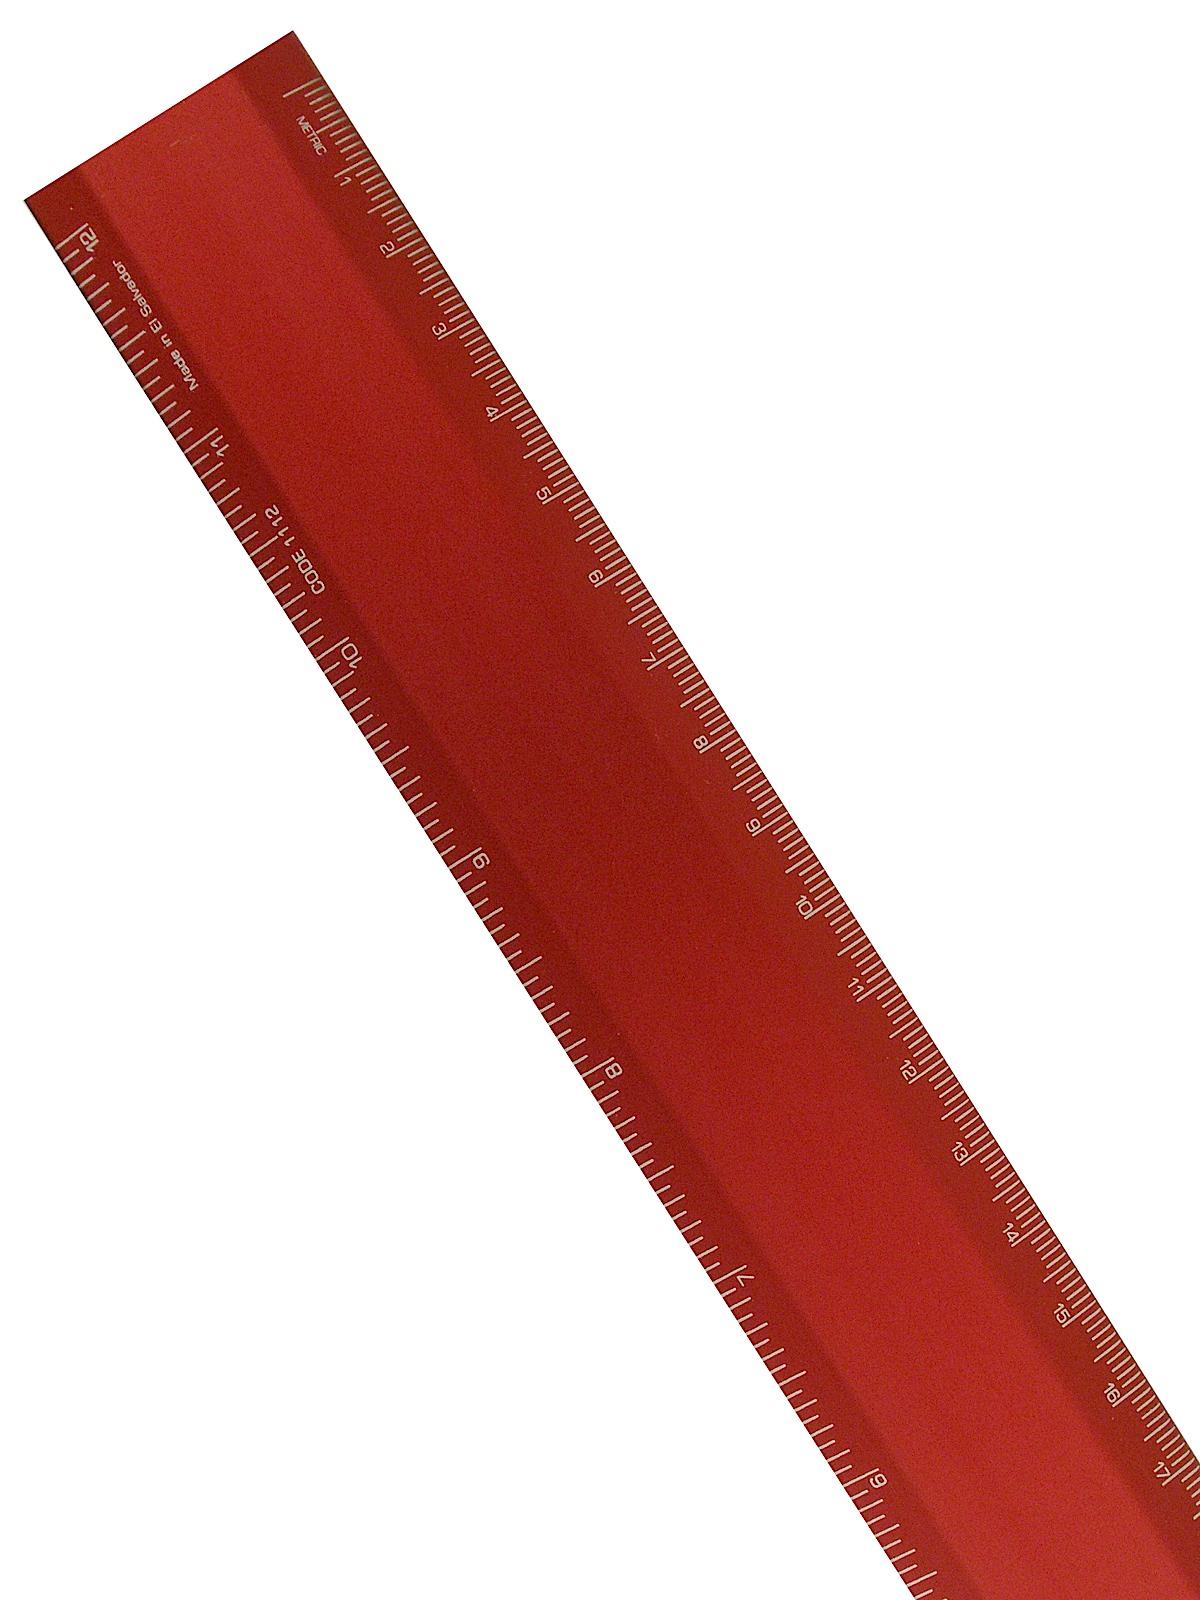 Colored Secretarial Rulers